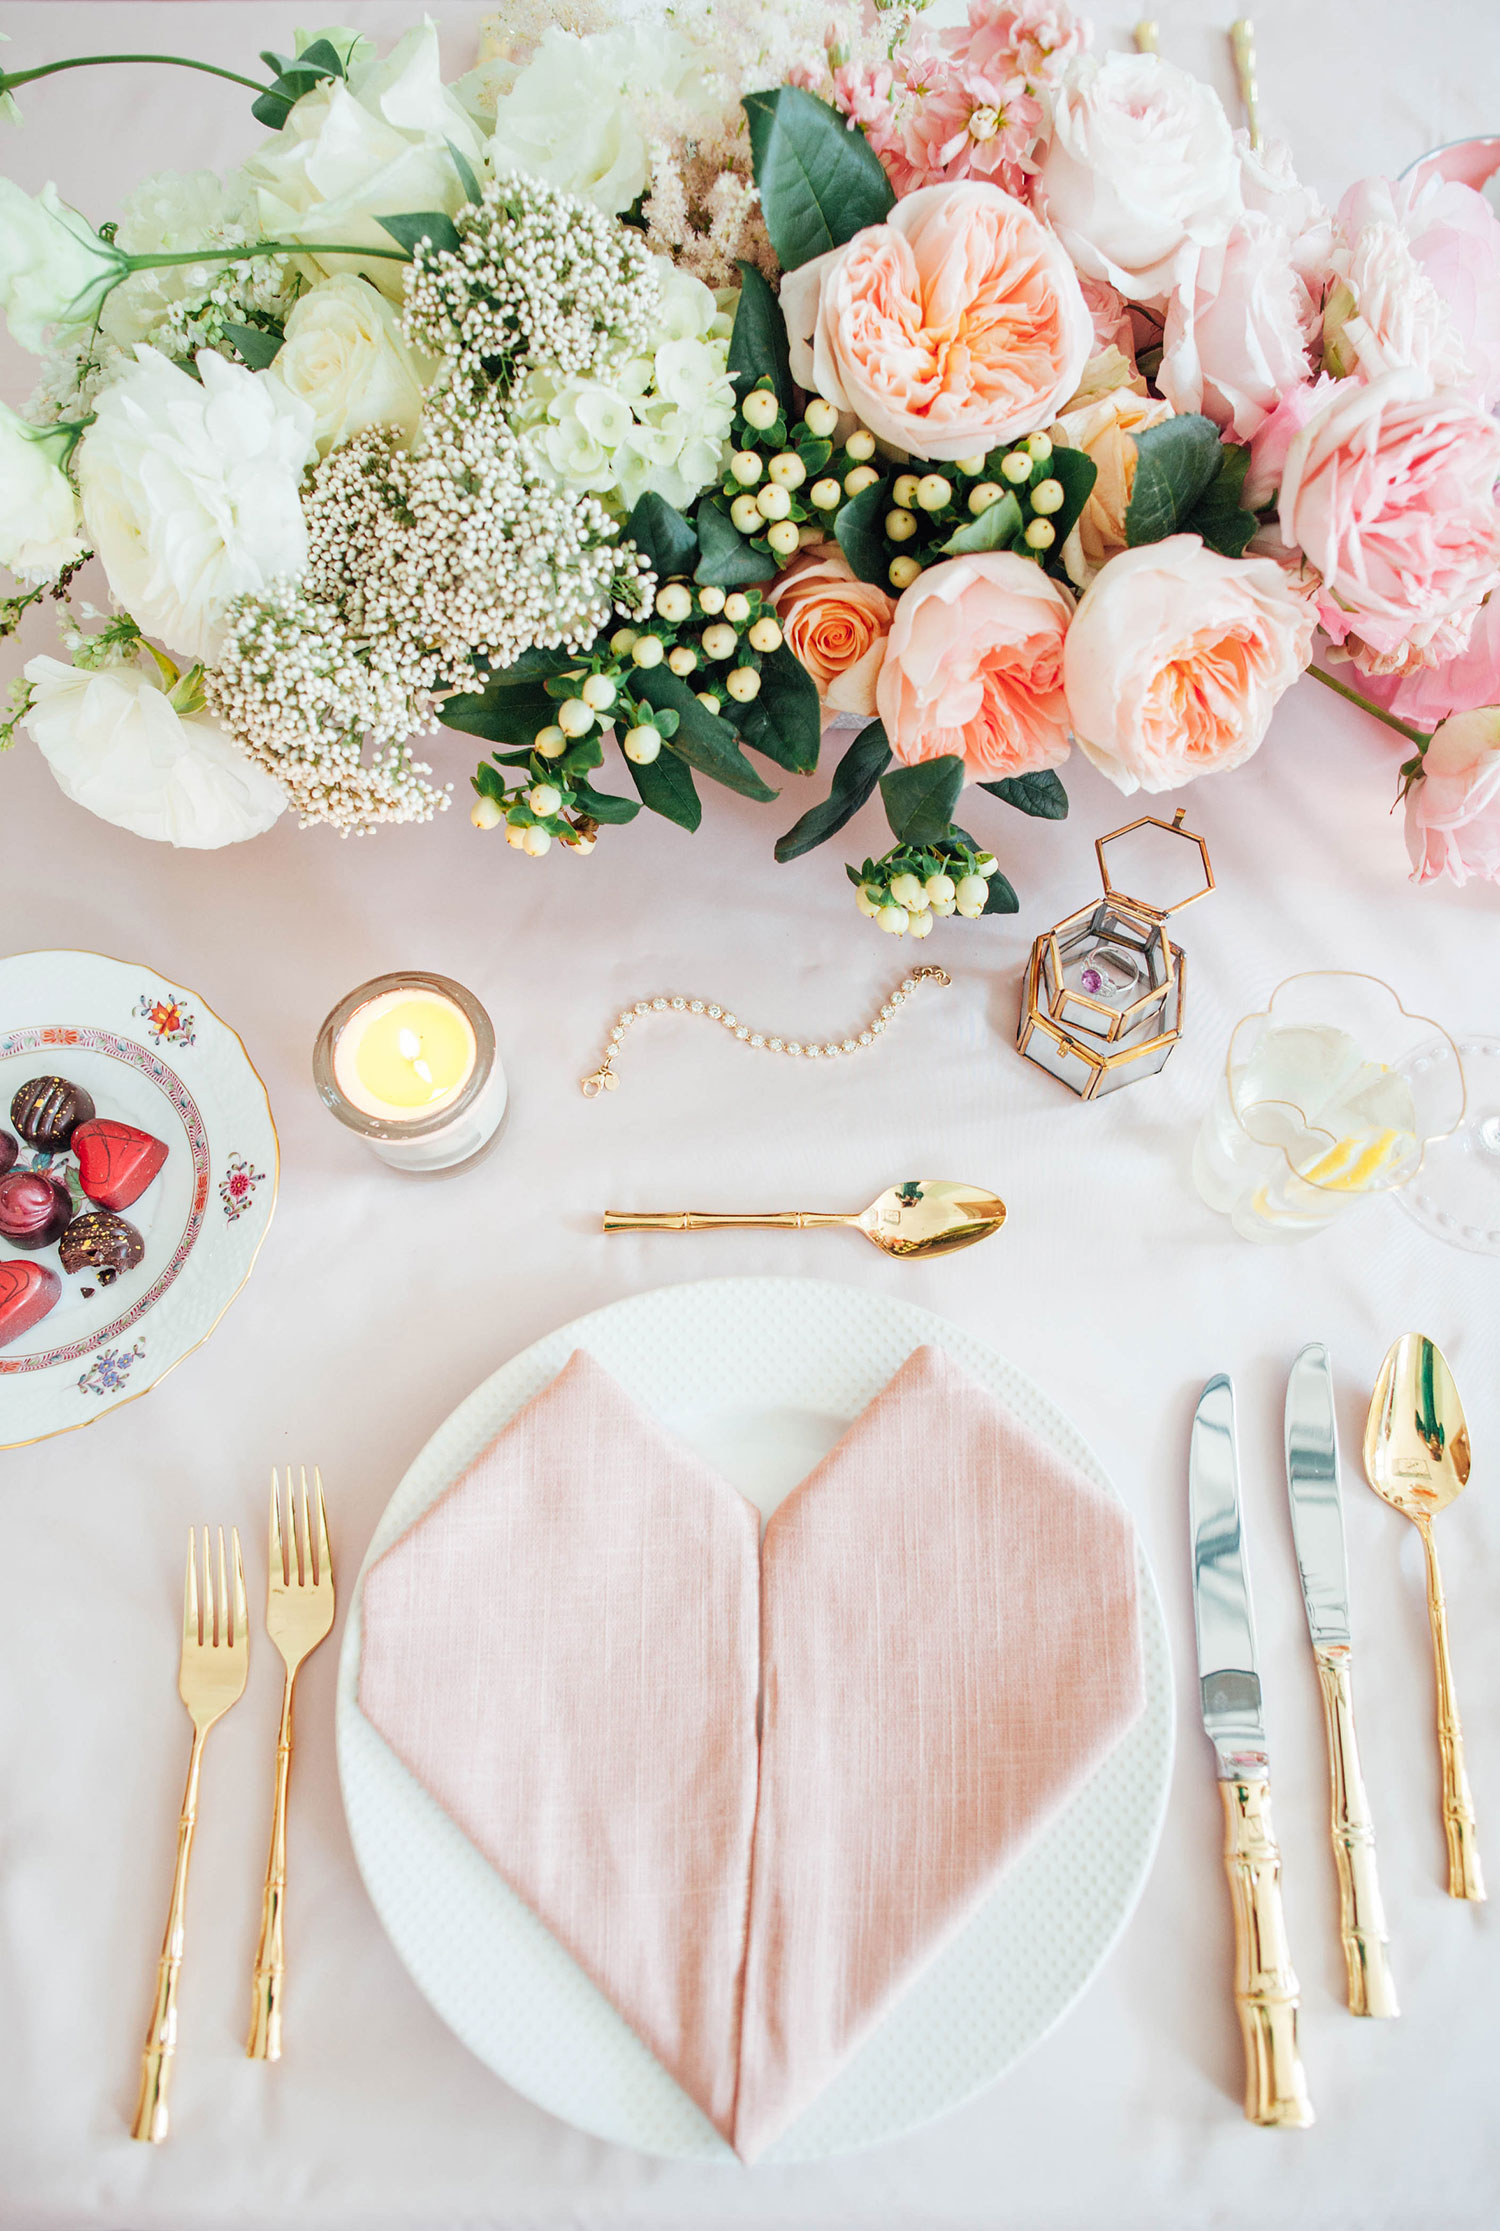 Or You Can Put Your Whole Heart Out On The Table Literally Okay Almost Mix Rose Pale Pink Elements With Golden Cutlery For A More Cutesy Look